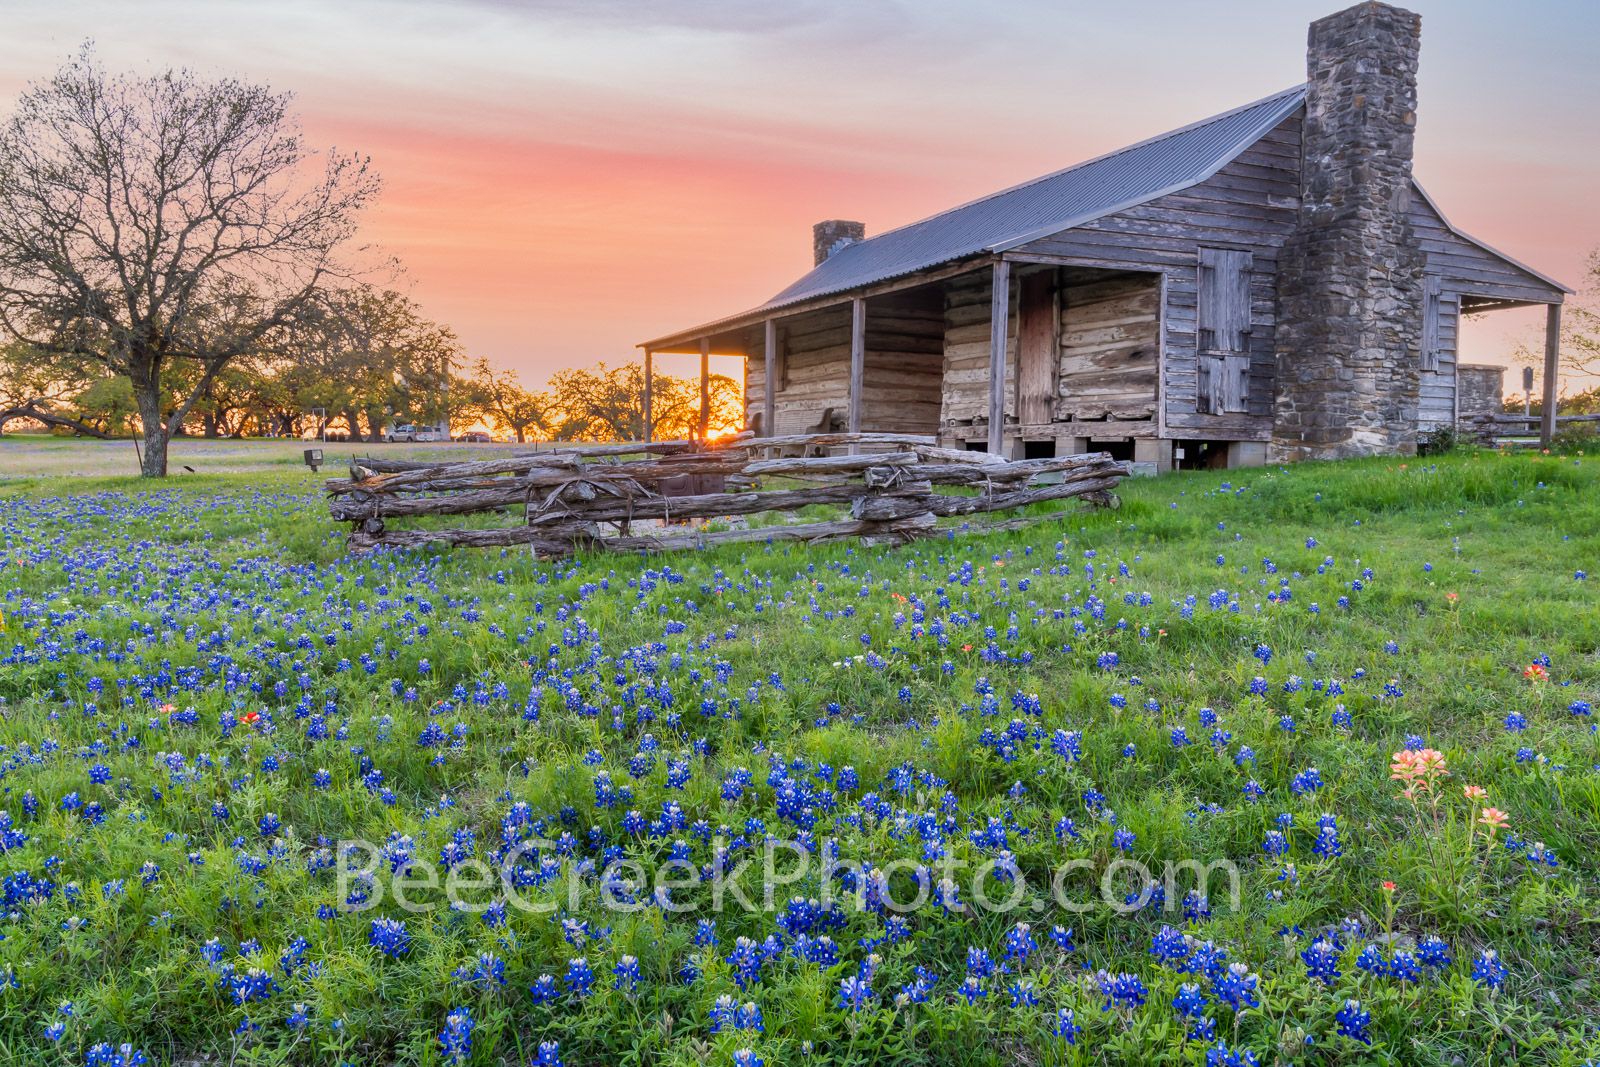 John P. Cole Cabin Wildflowers at Sunset - We took the John P. Cole Cabin with bluebonnets and Indian Paintbrush wildflowers...